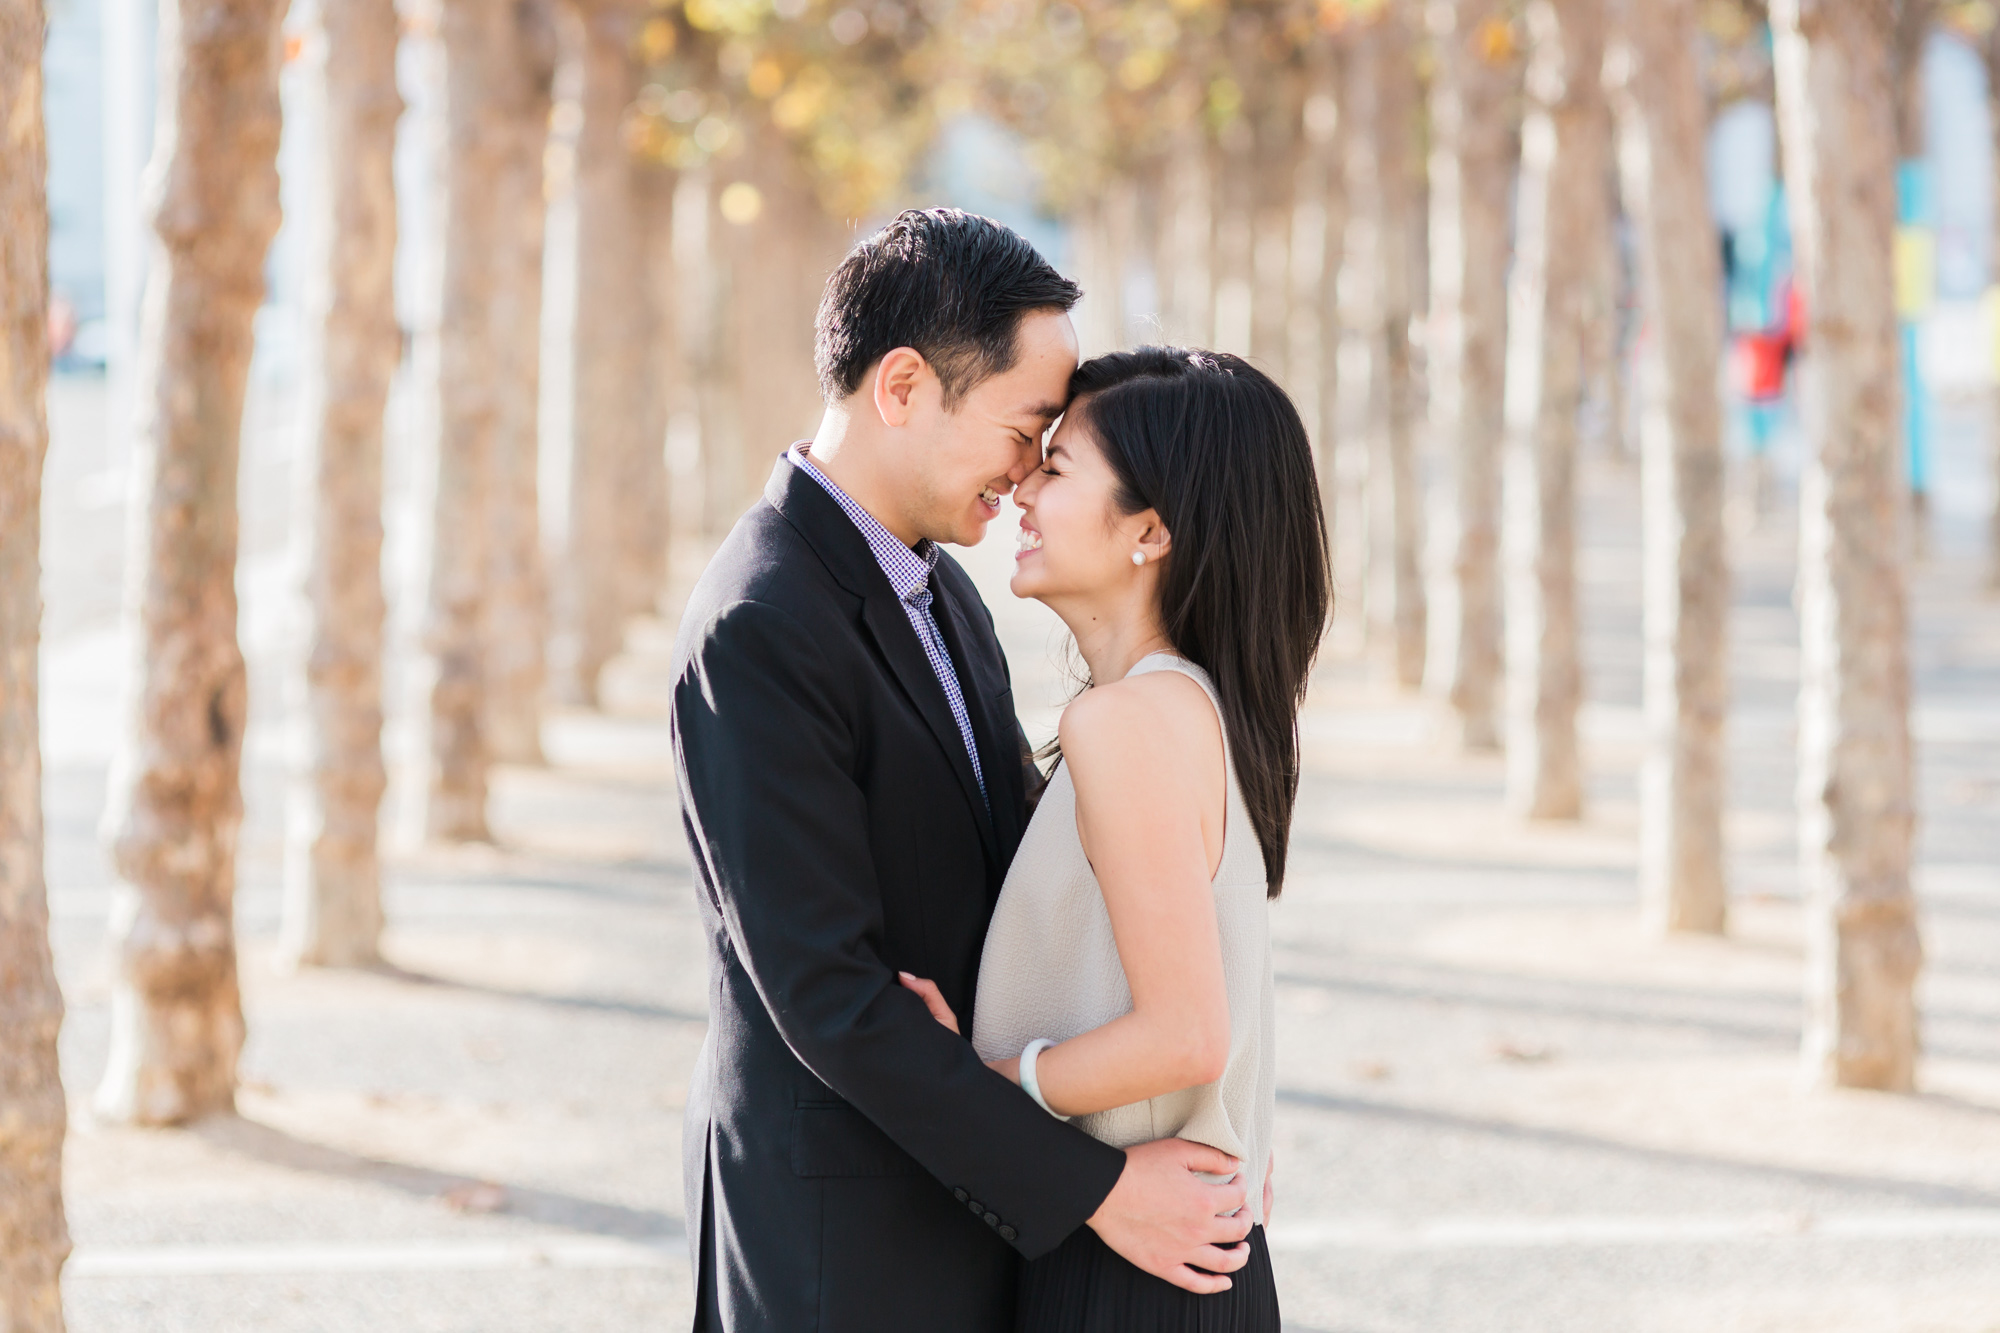 joeewong-jaal-california-san-francisco-engagement-15